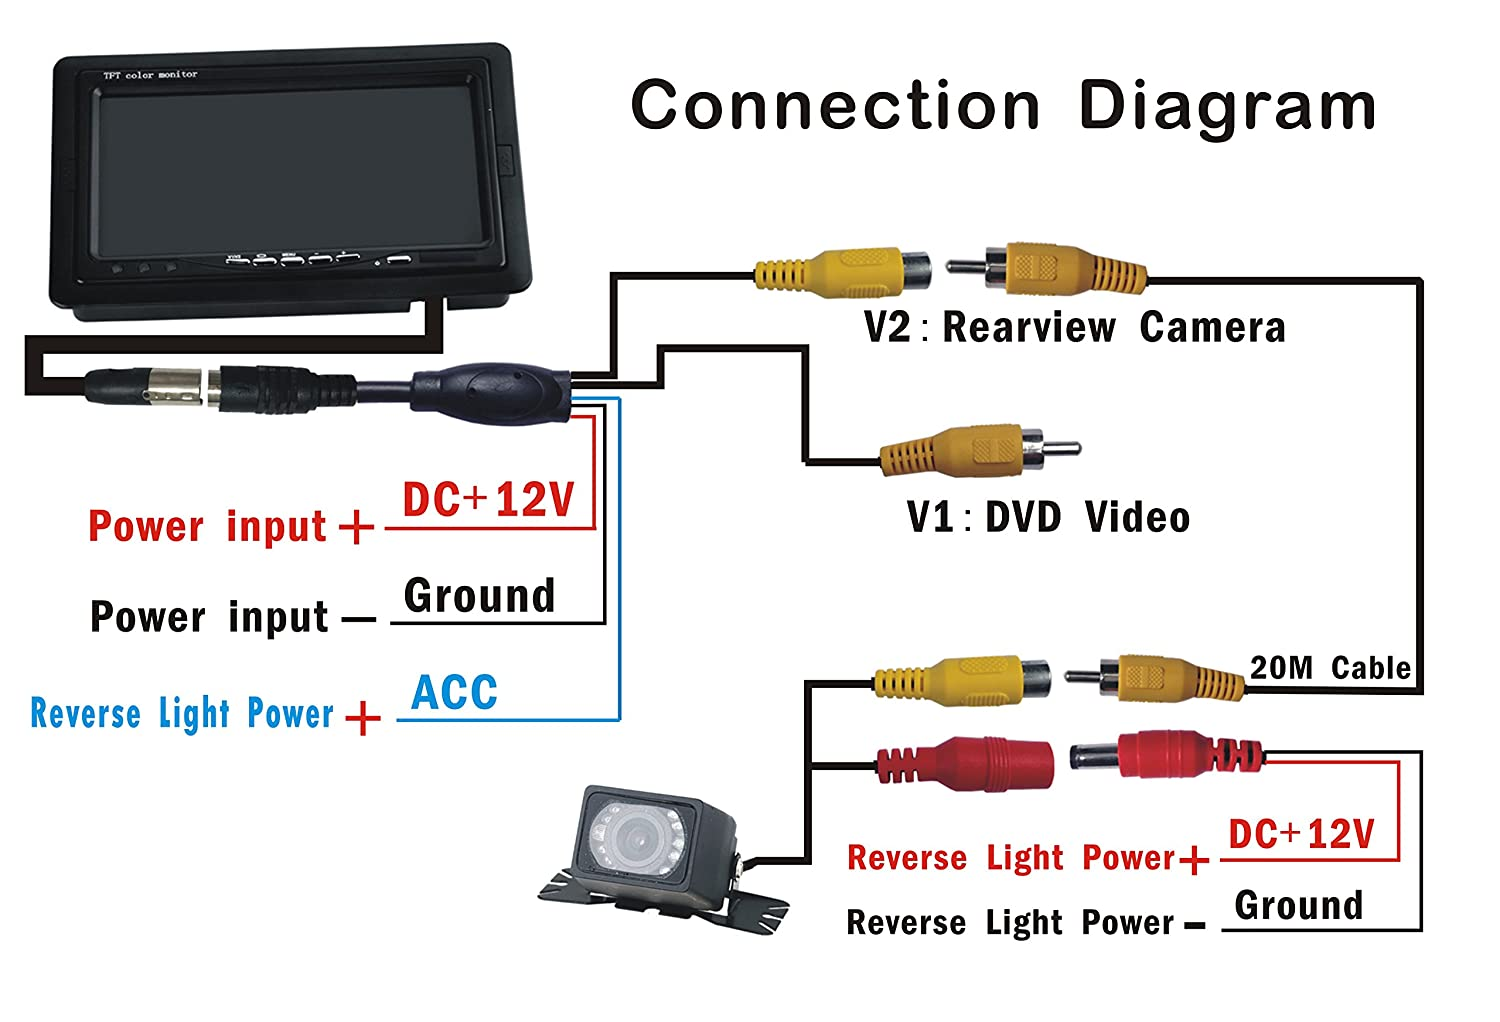 81KisOIYtBL._SL1500_ amazon com belle backup camera and monitor kit 7 inch tft lcd tft reversing camera wiring diagram at creativeand.co